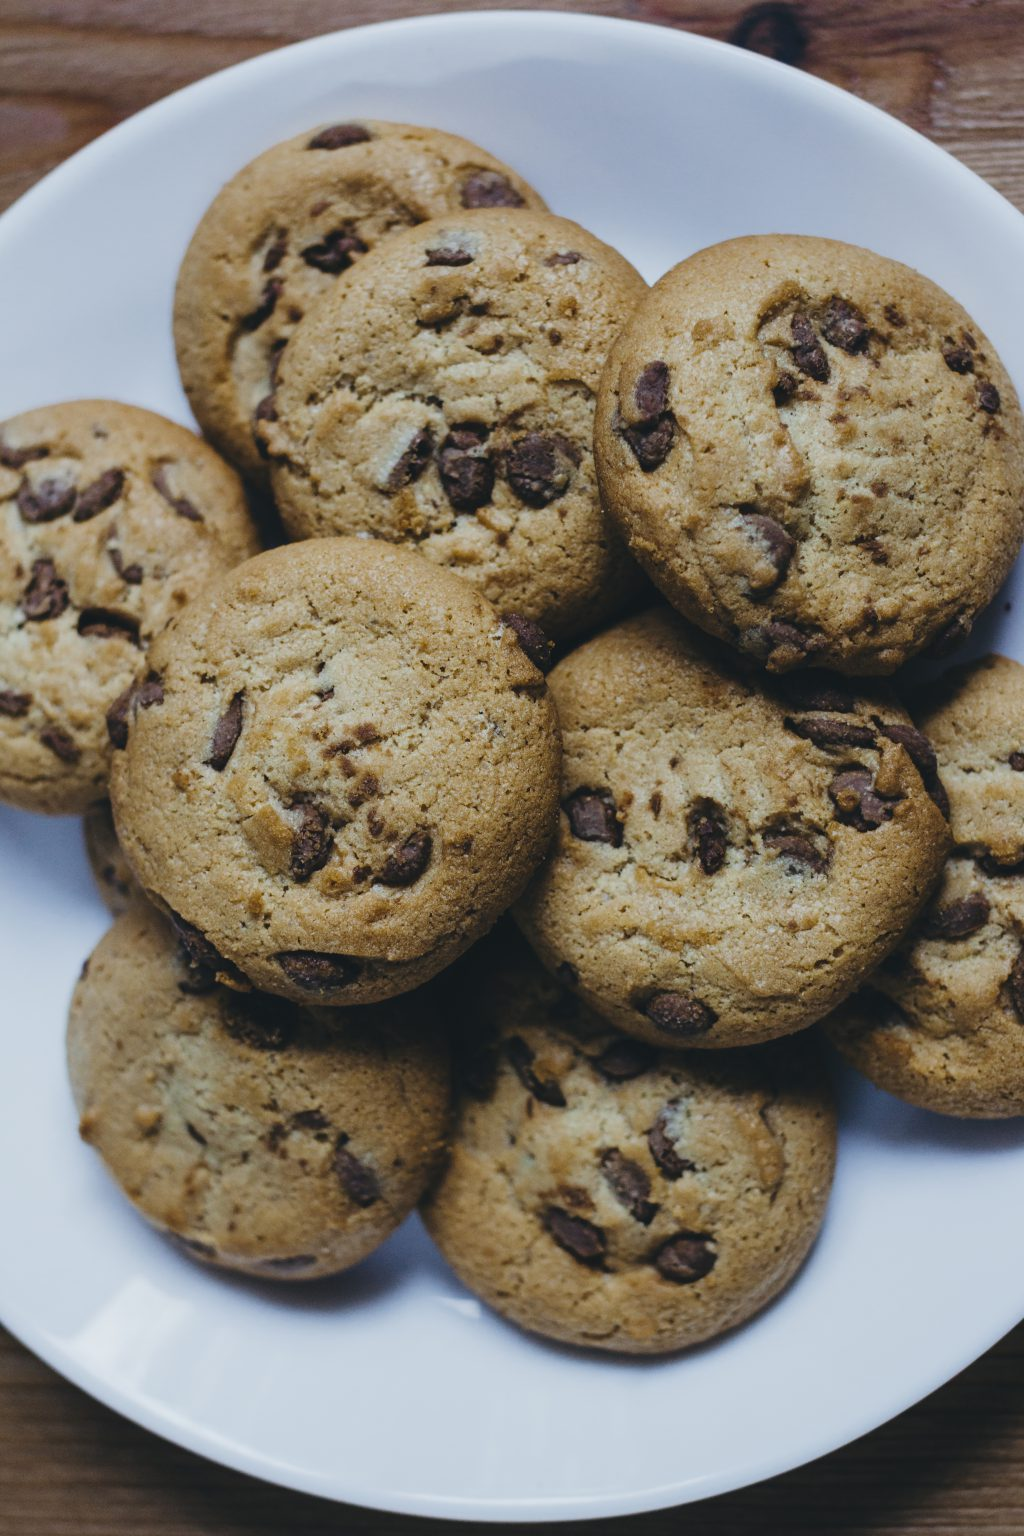 Chocolate chip cookies on a plate 5 - free stock photo